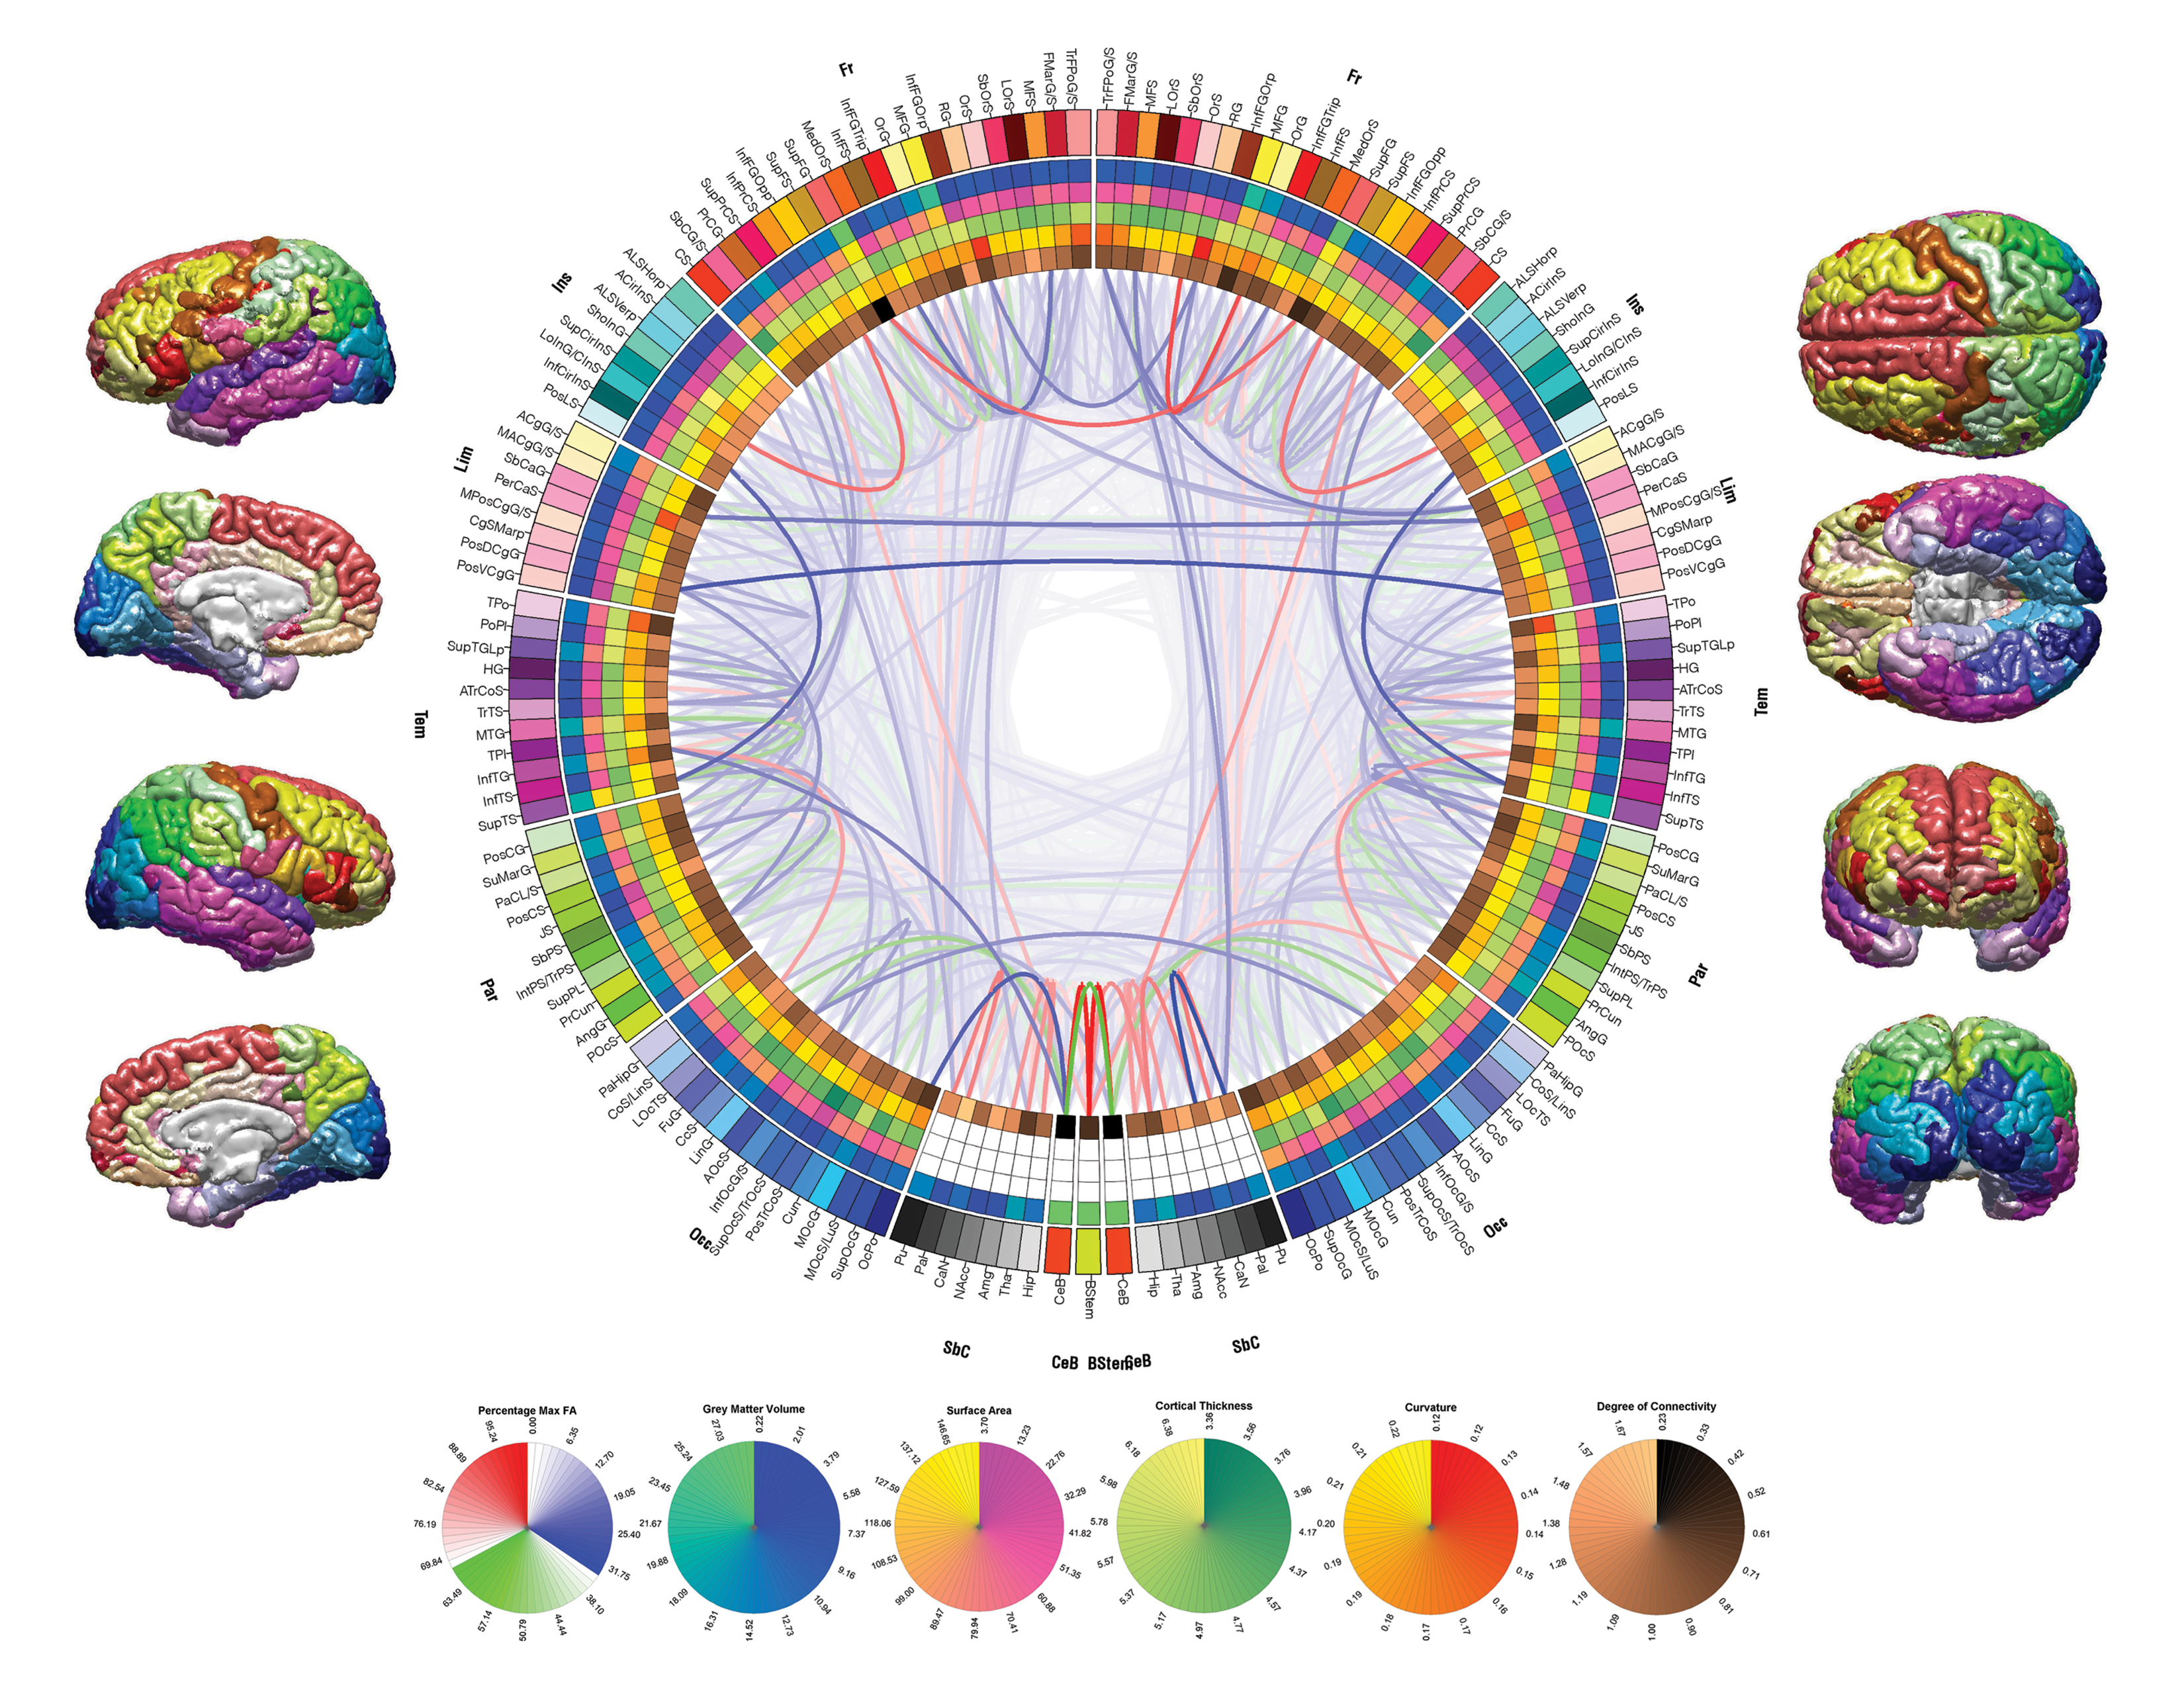 Human Brain Mapping Mapping Morphometry and Connectedness of the Human Brain | The  Human Brain Mapping